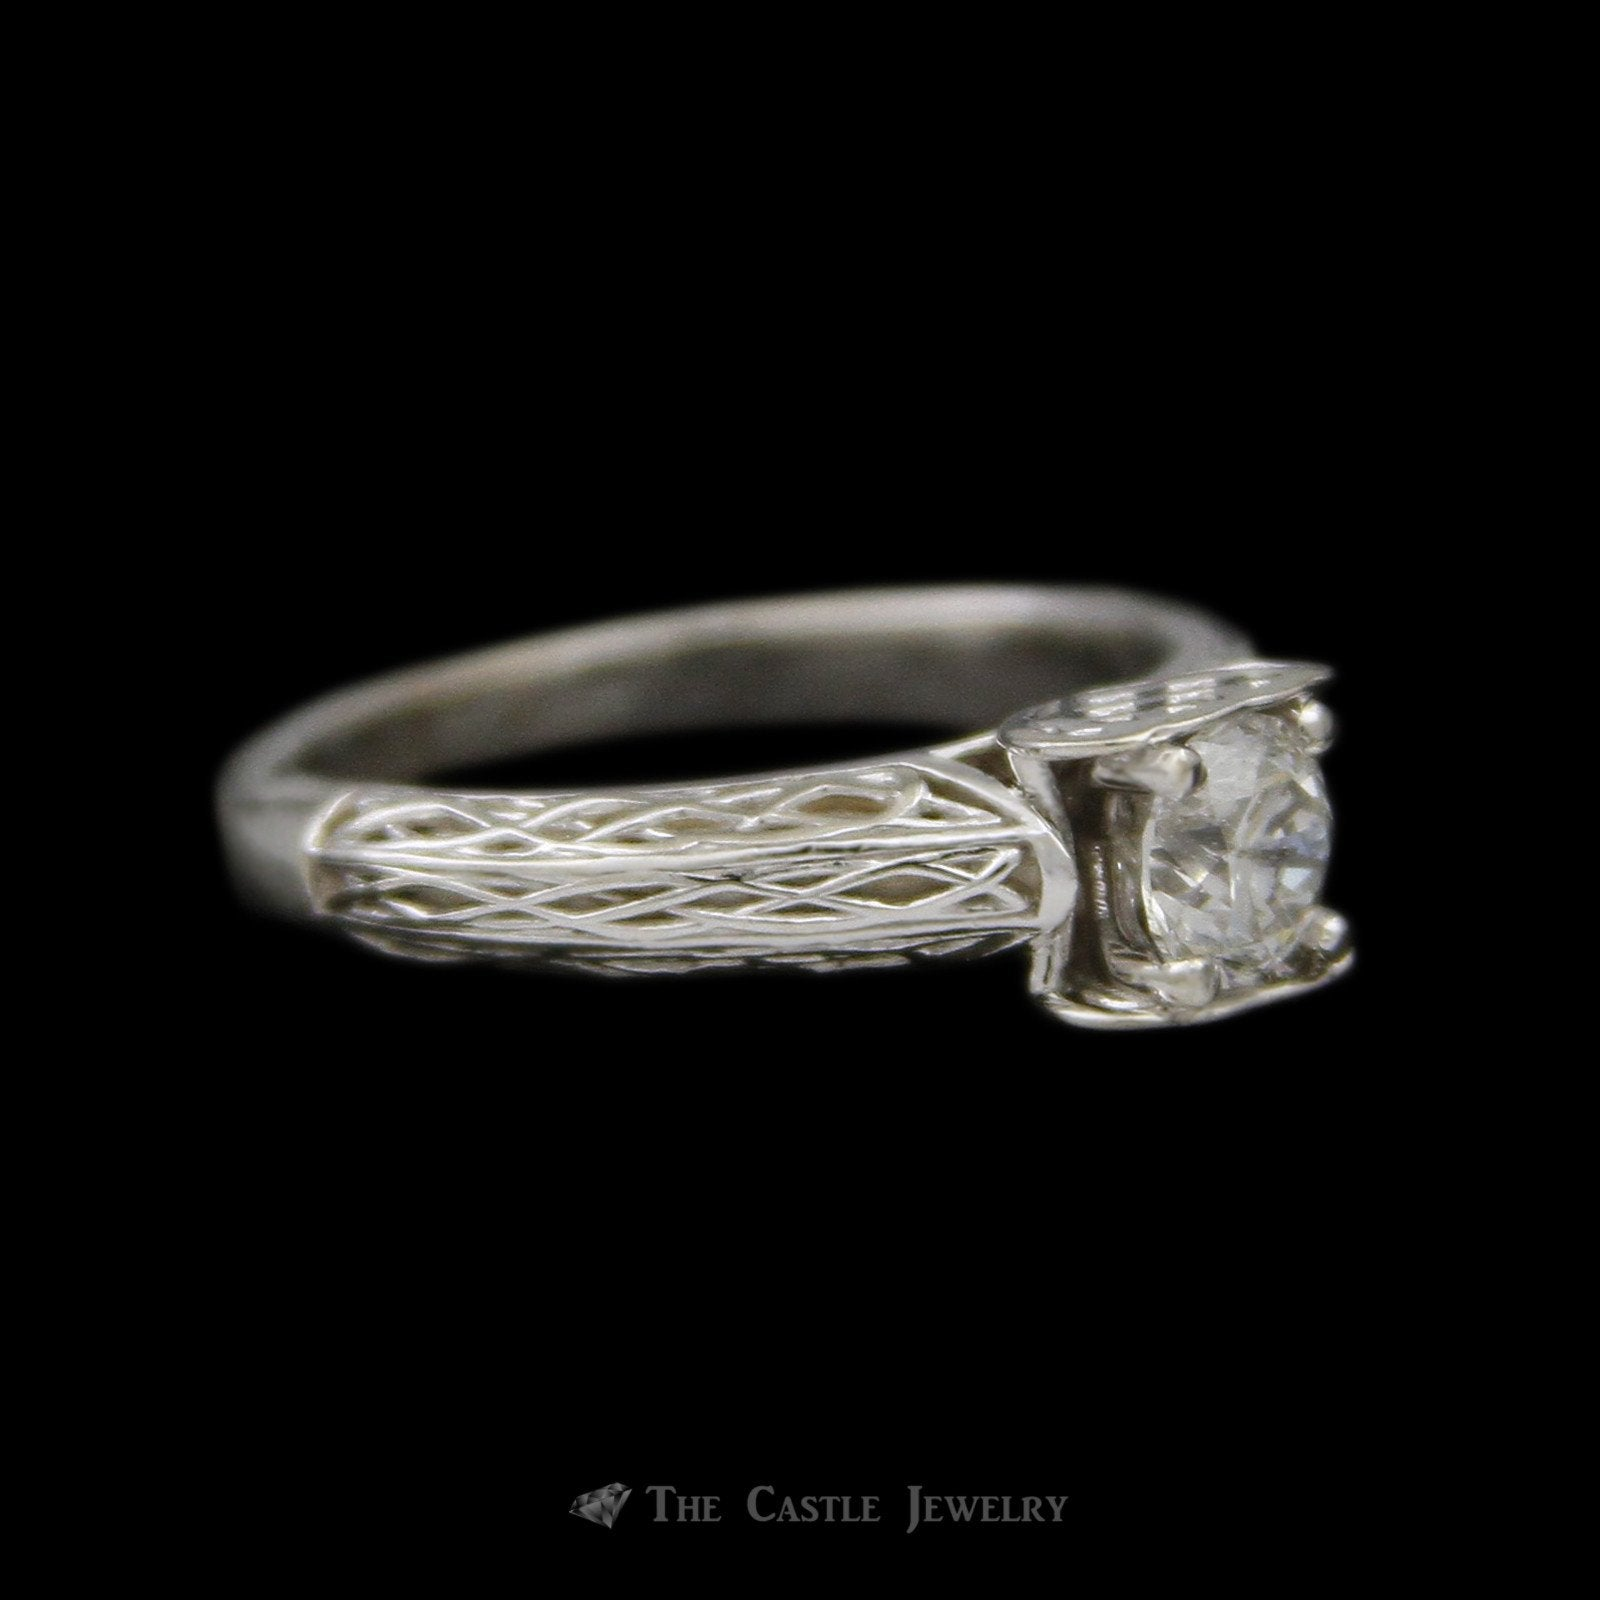 Round Brilliant Cut Diamond Solitaire Engagement Ring in Woven Design Mounting-2